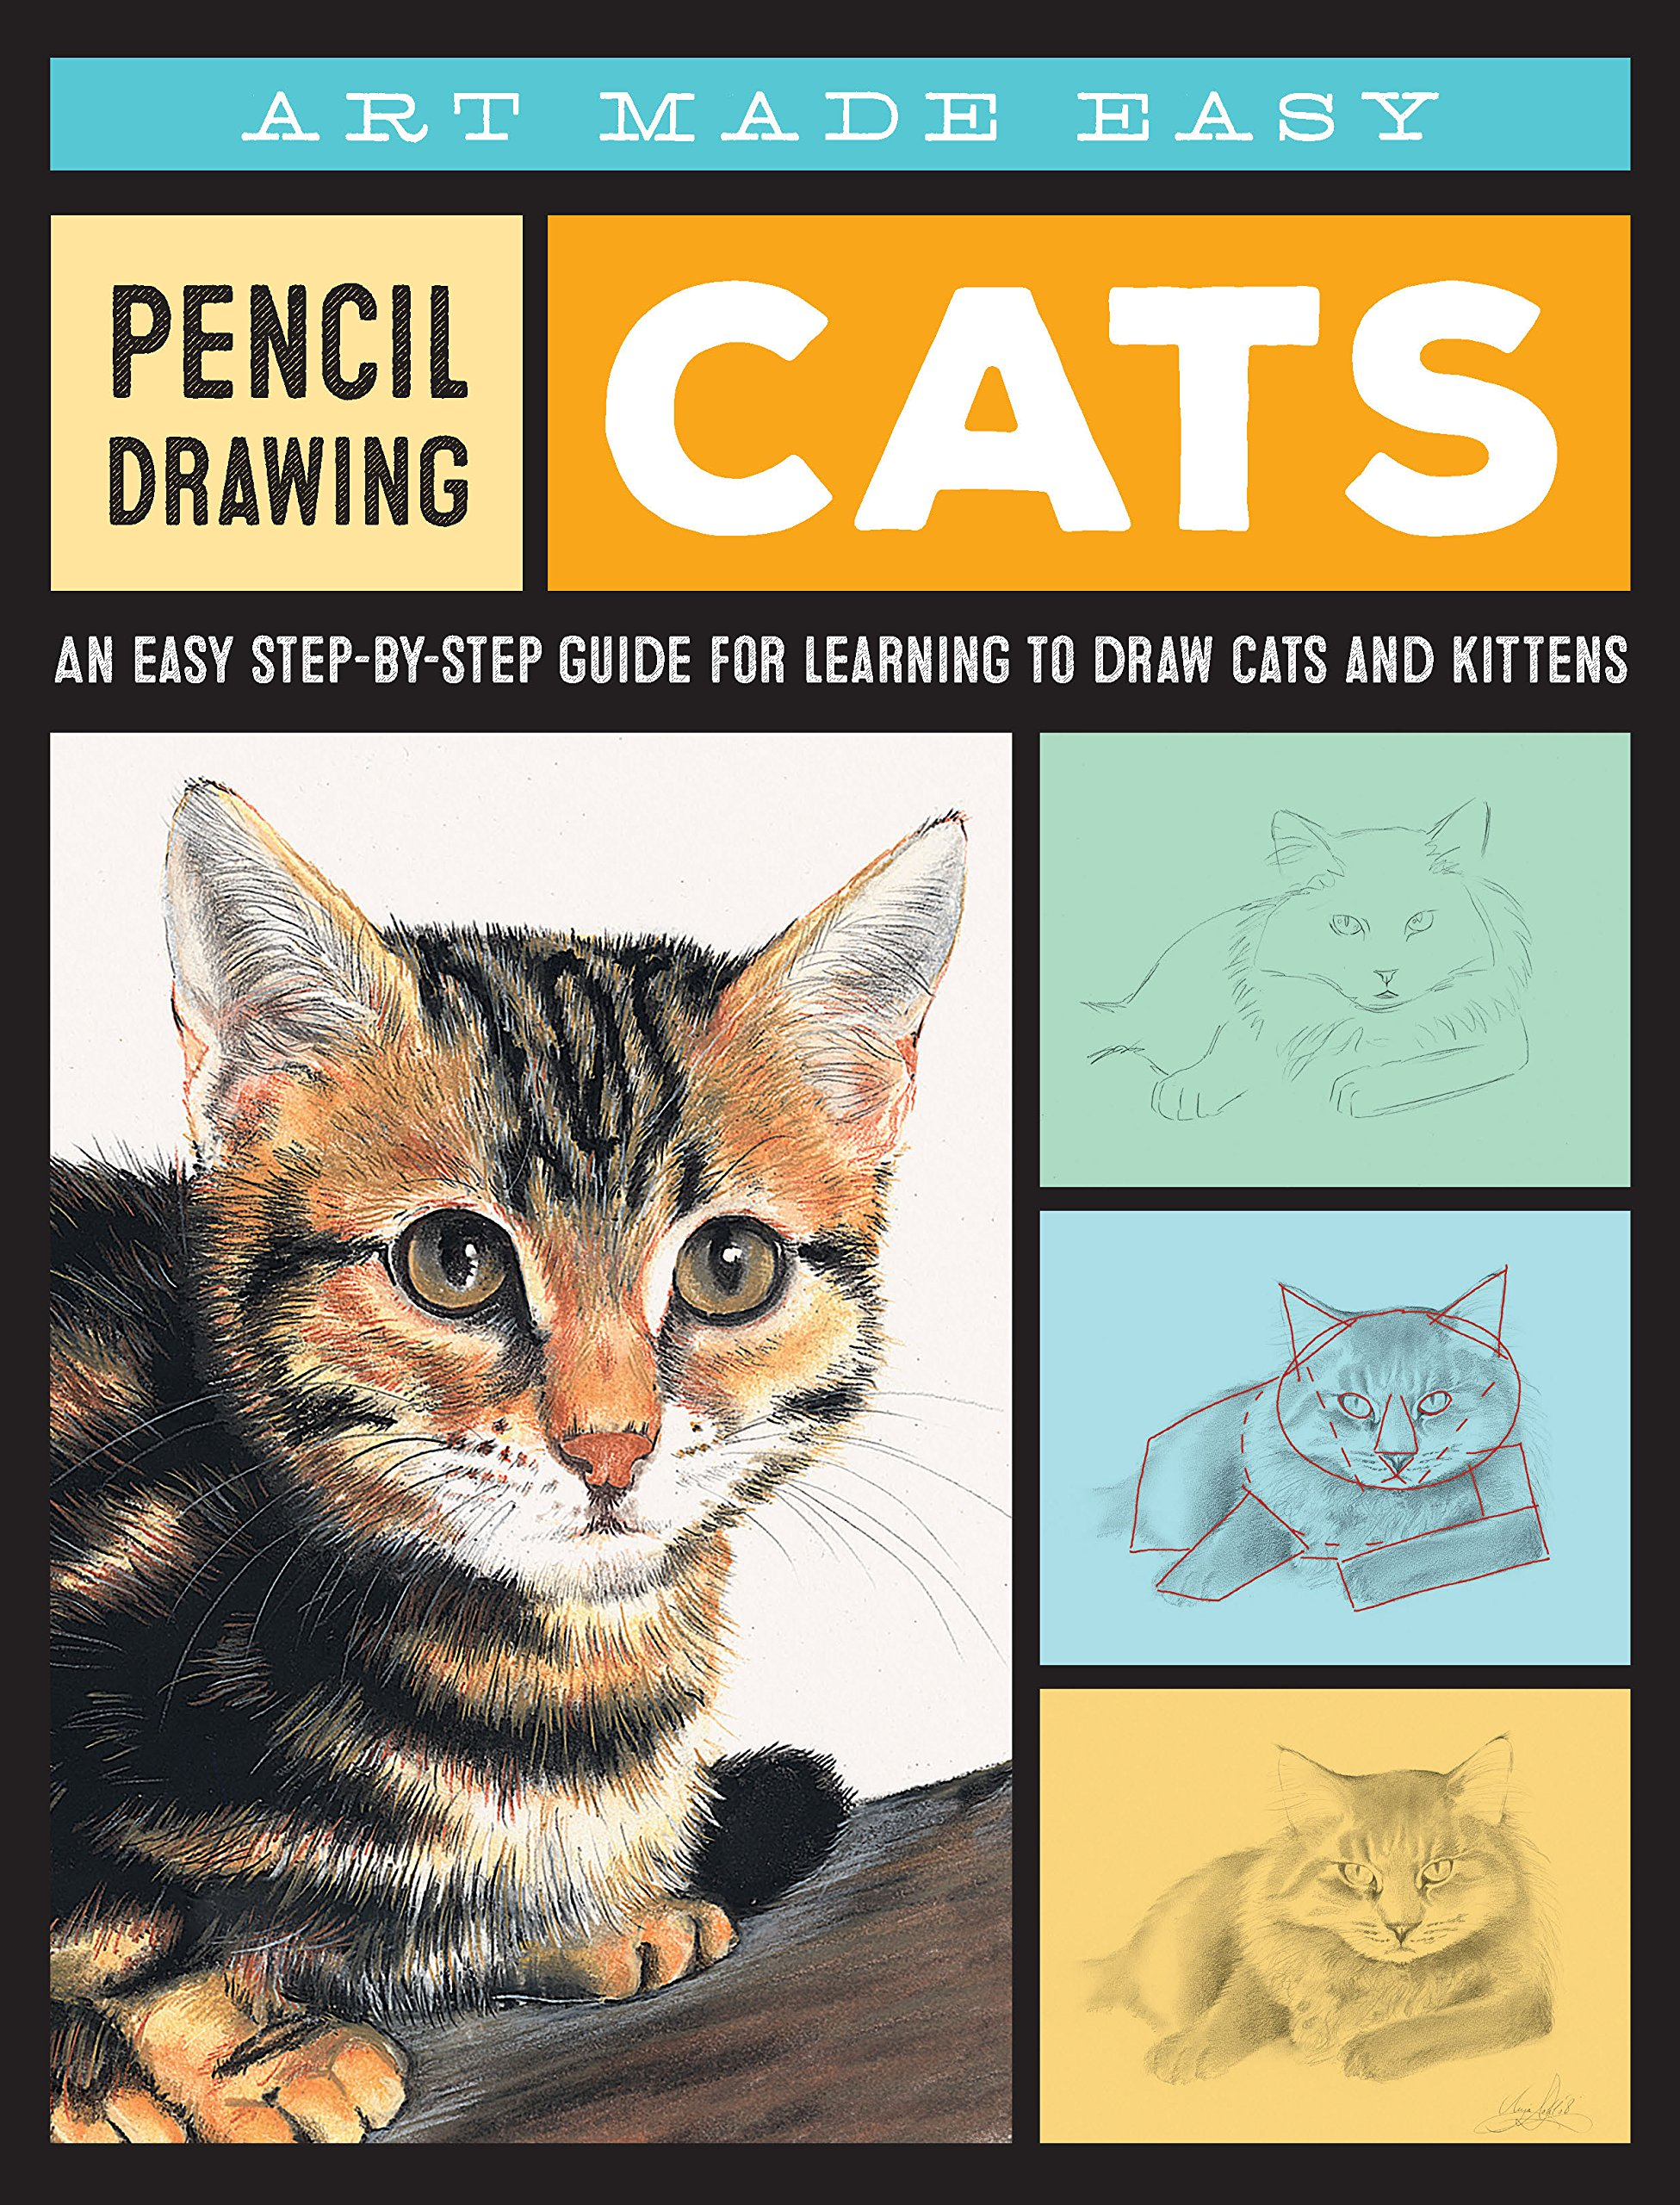 Pencil Drawing: Cats: An easy step-by-step guide for